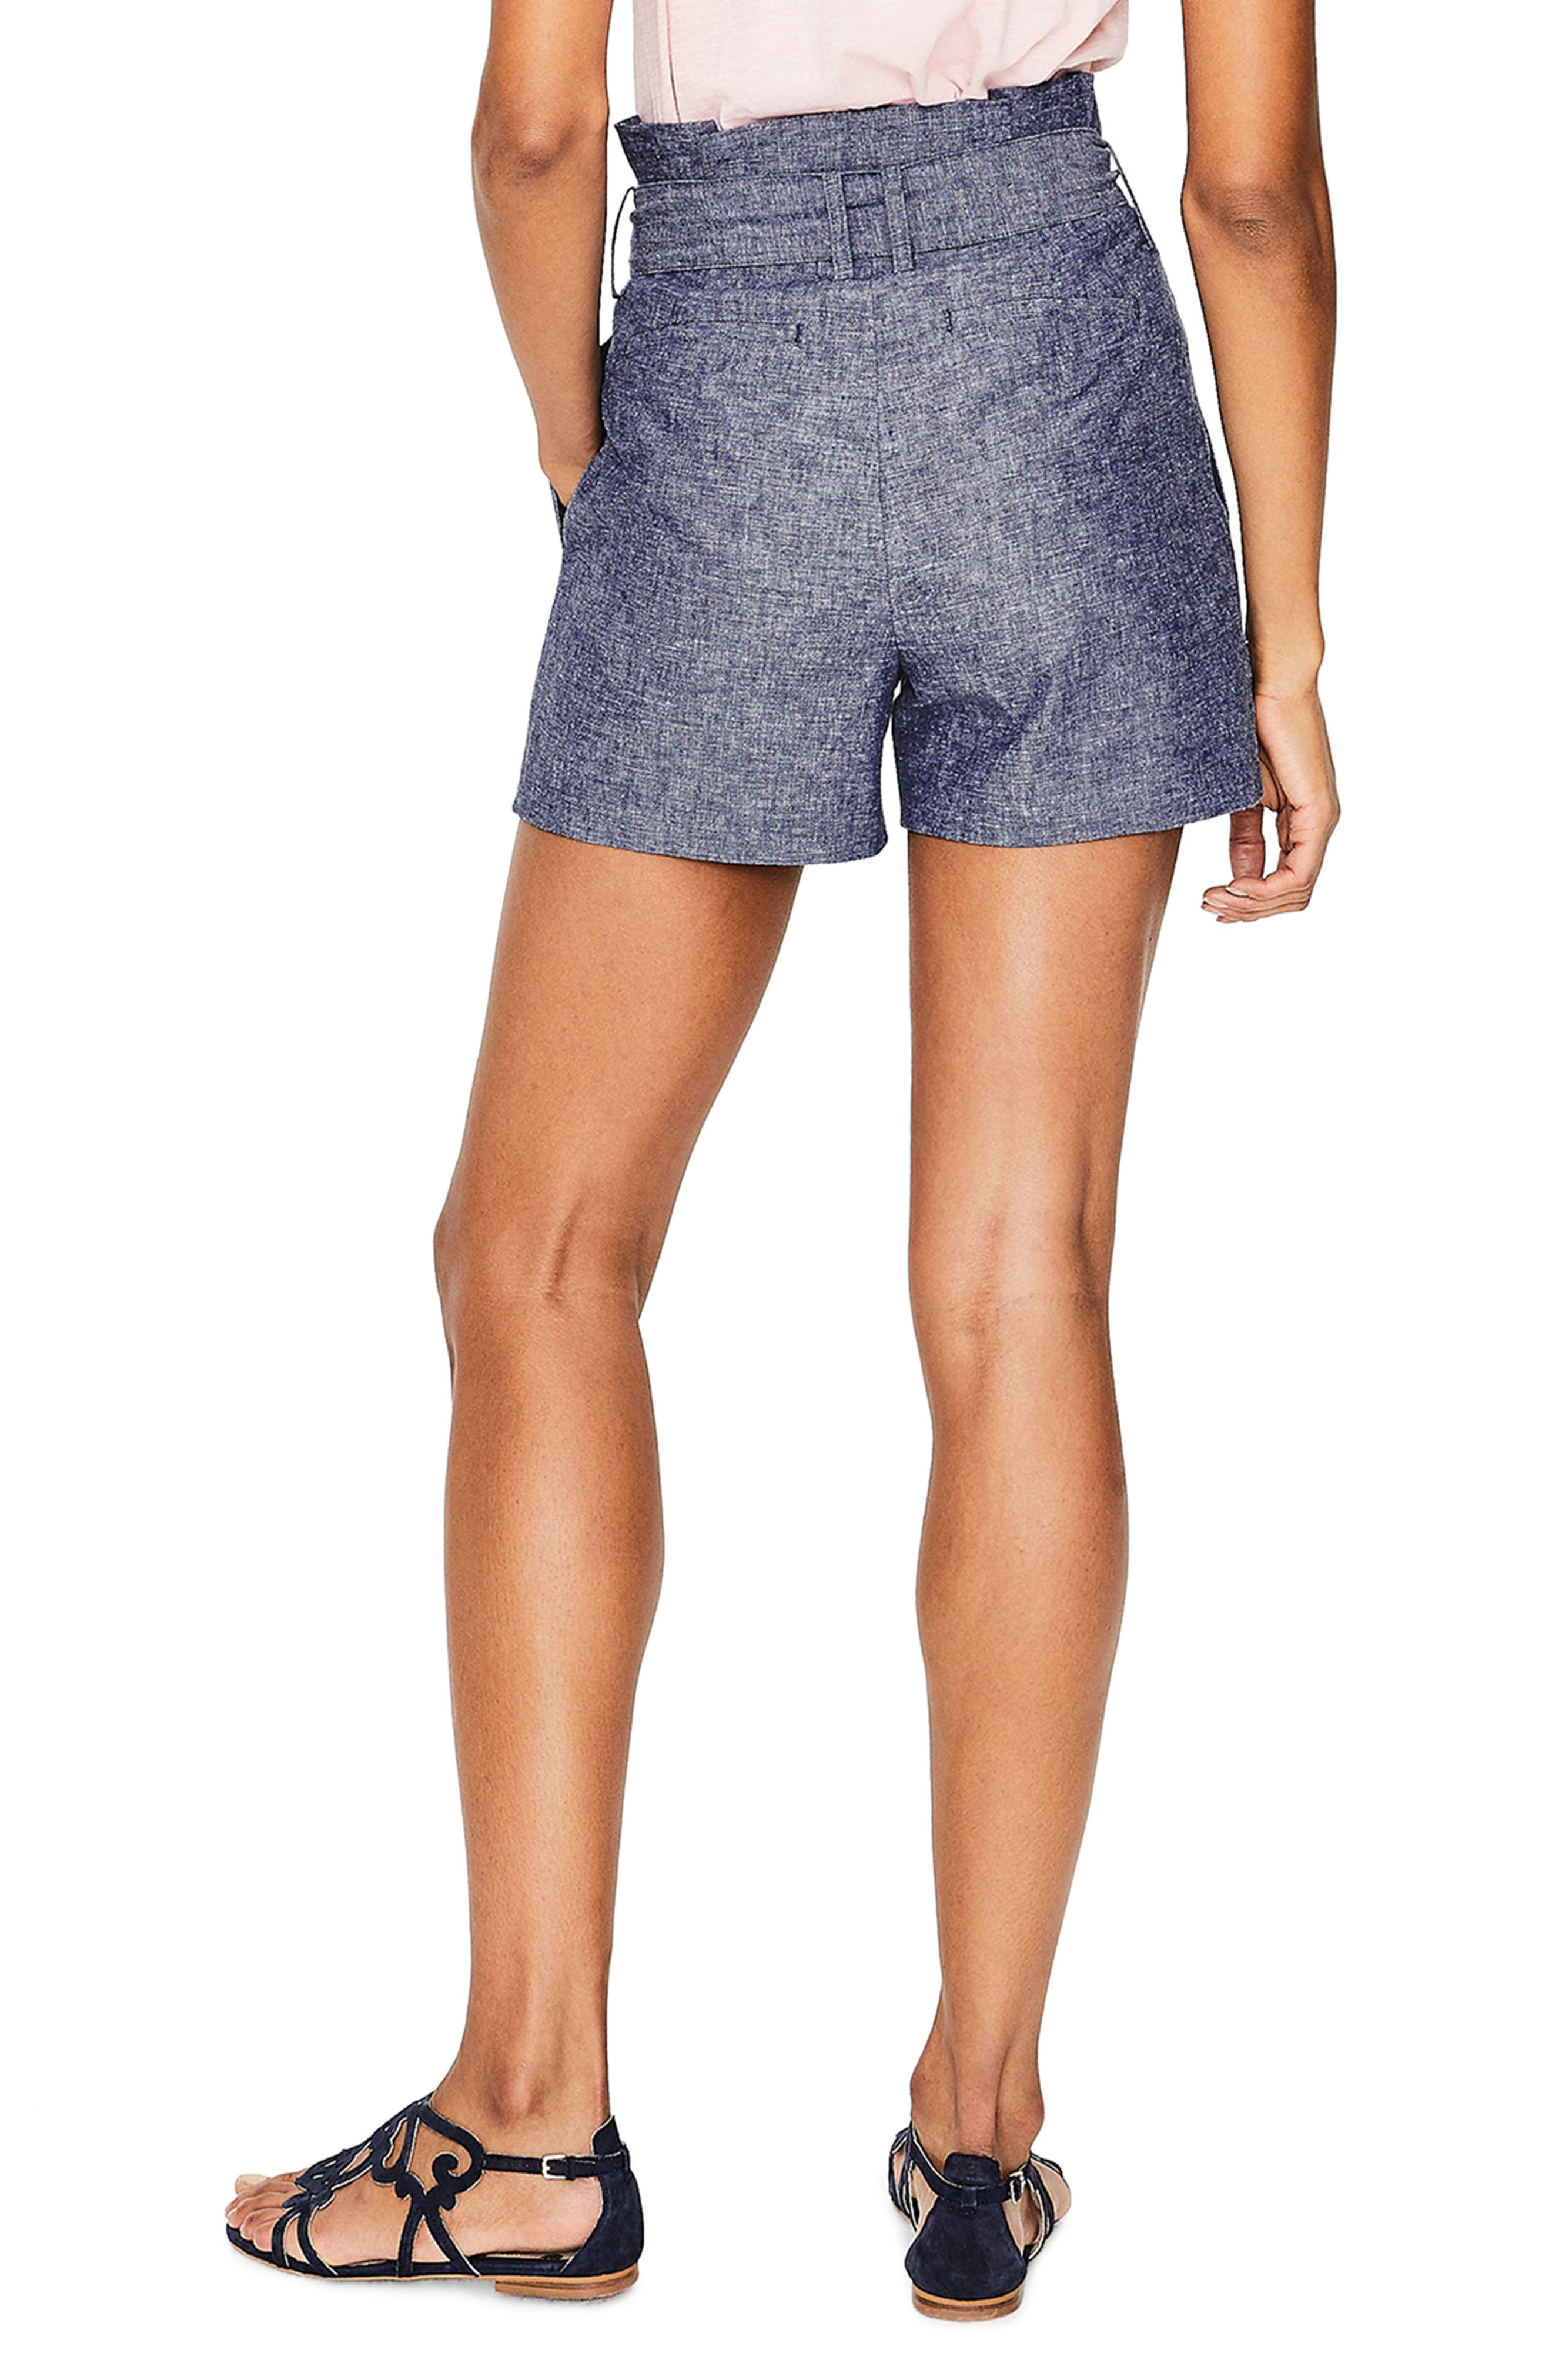 a217dd007dba92 Women's Boden Clothing | Nordstrom